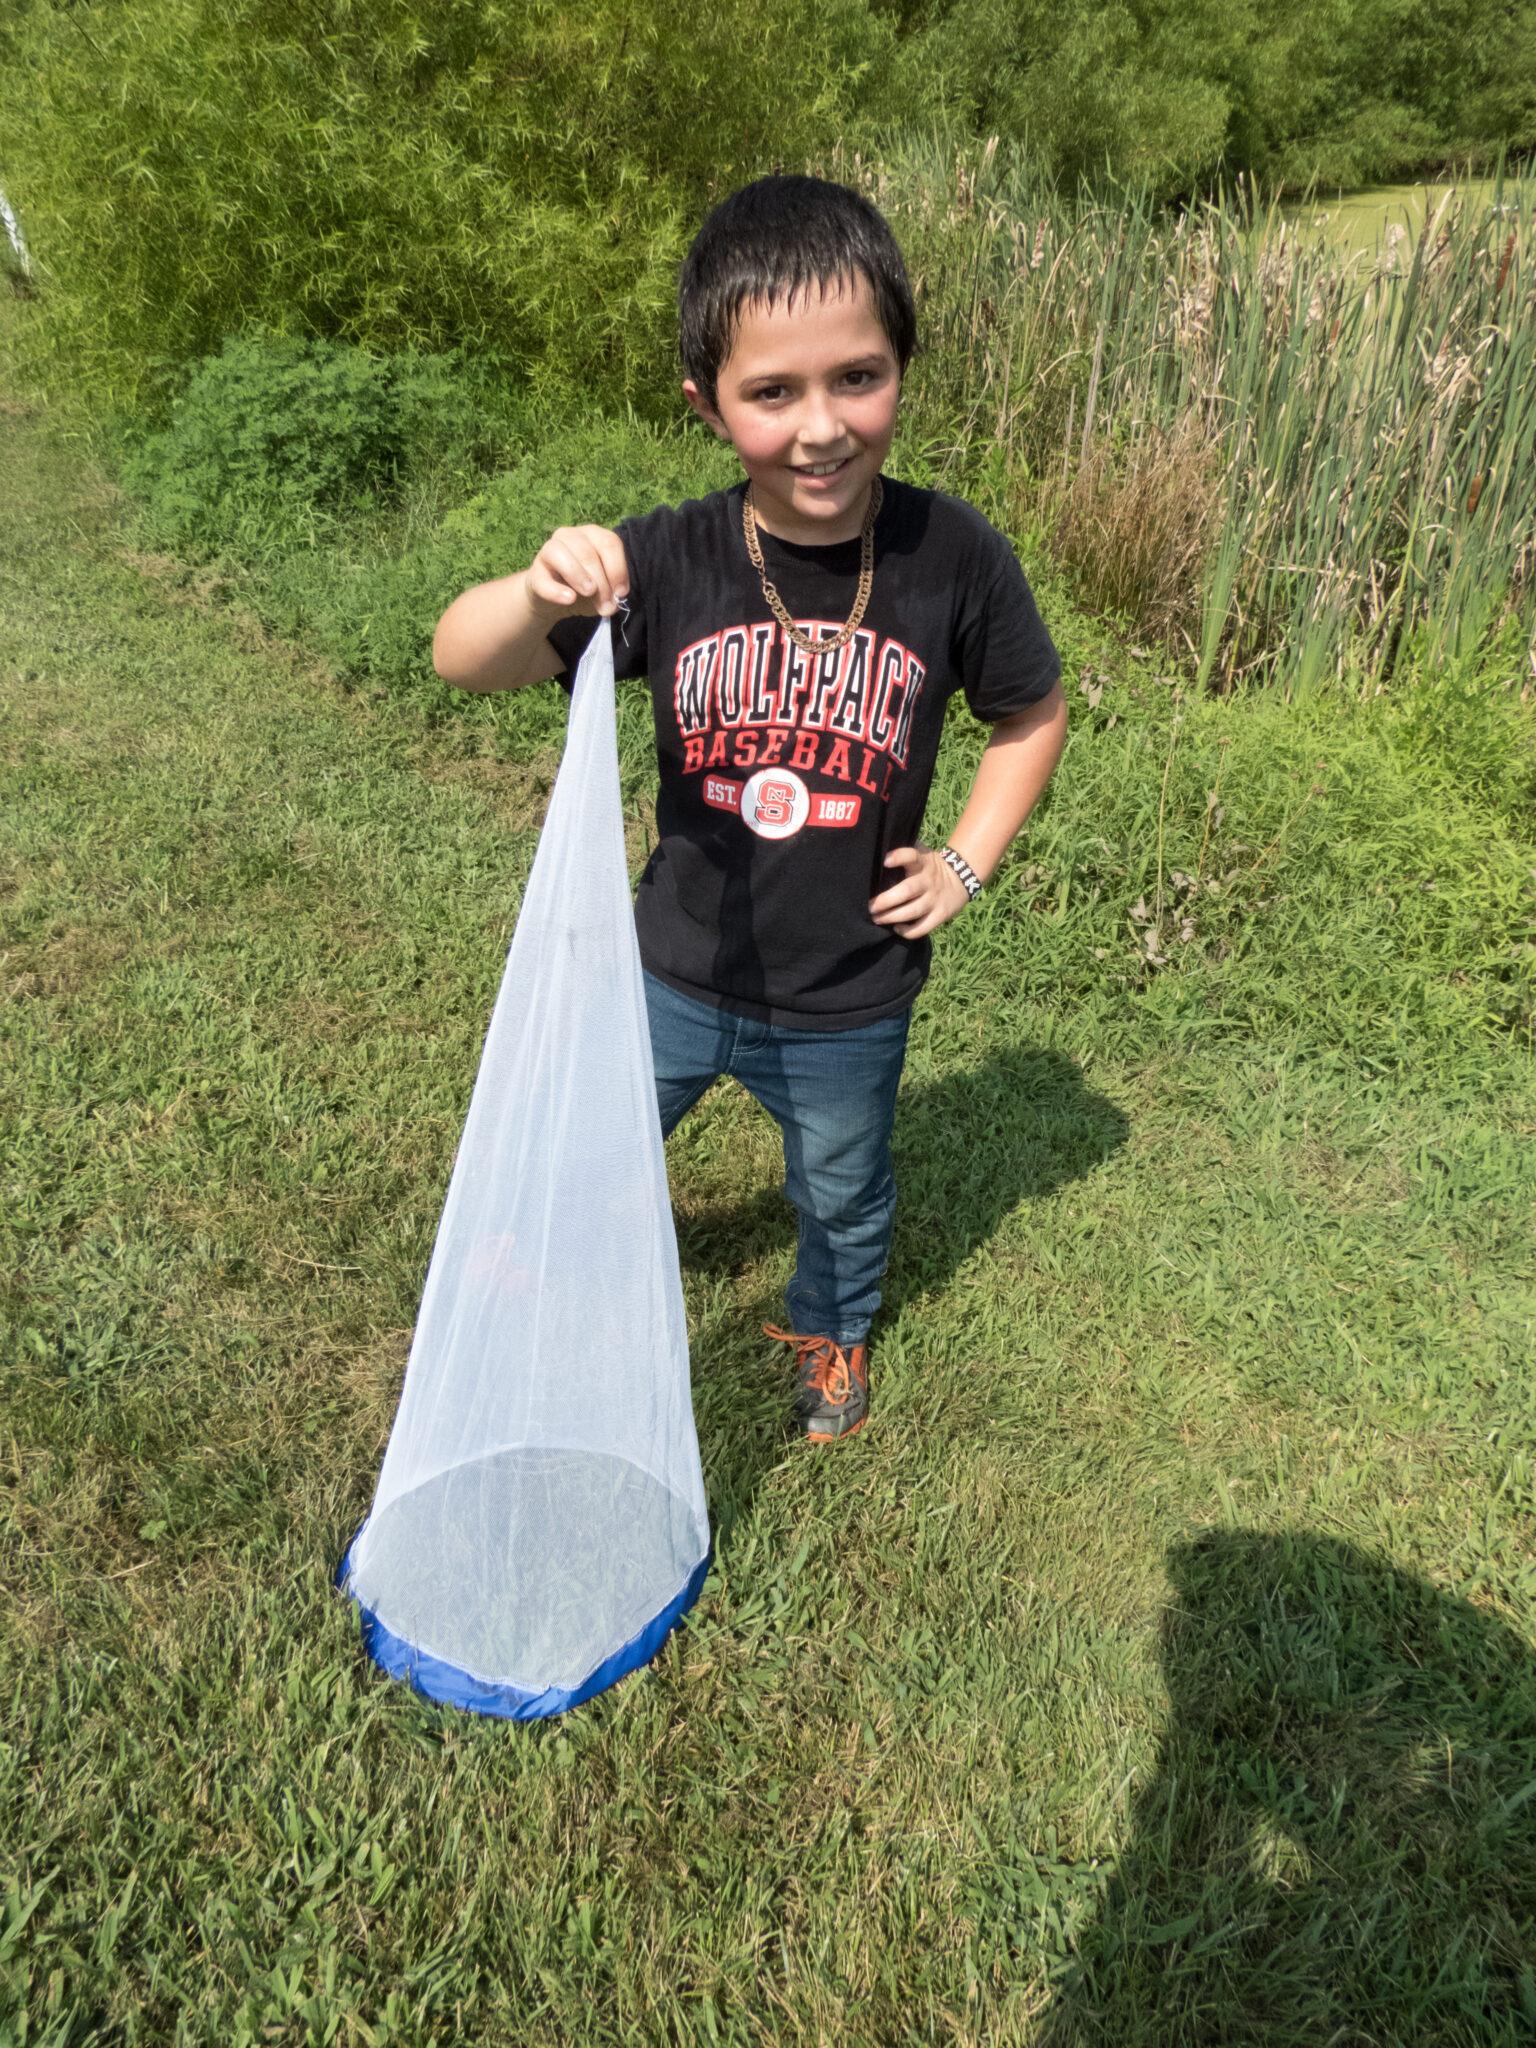 How Can Kids Become Citizen Scientists?